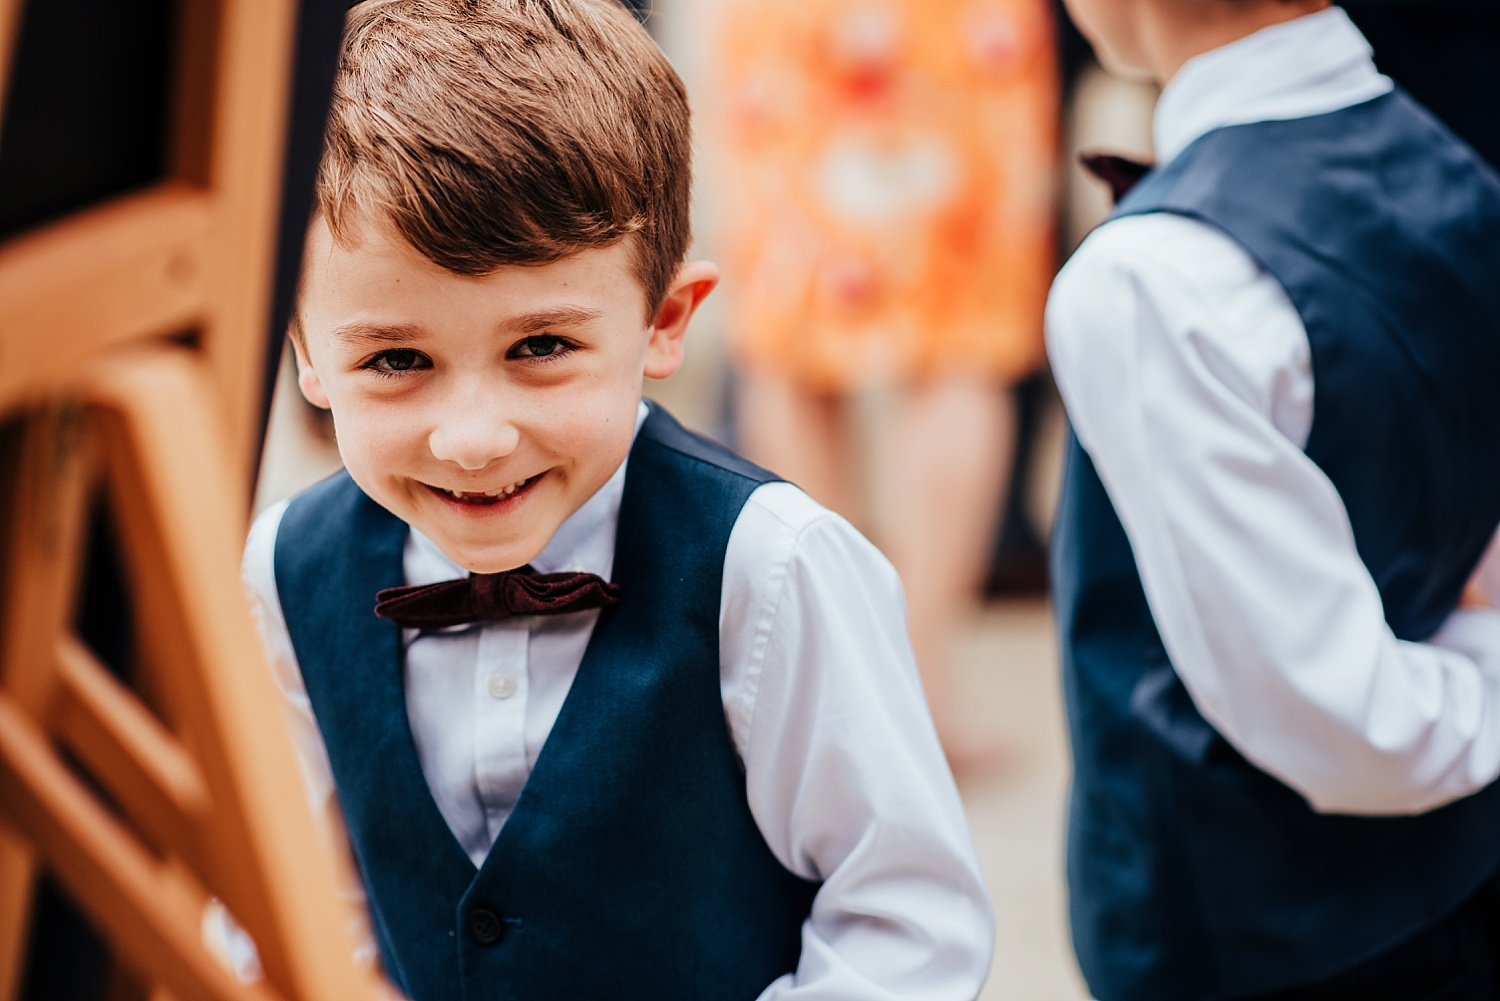 young boy in suit and bowtie smiling at camera